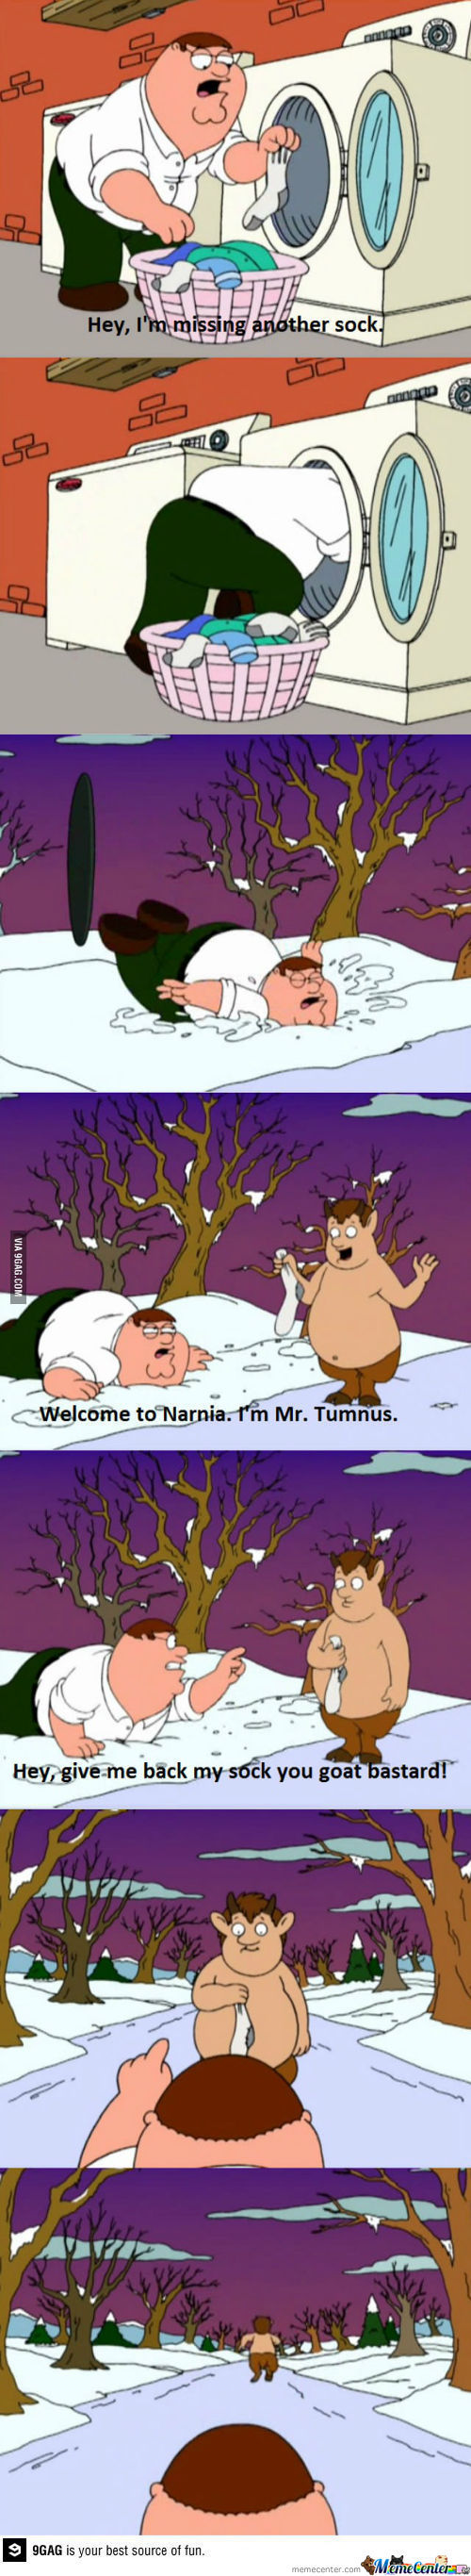 Funny Family Guy Scene